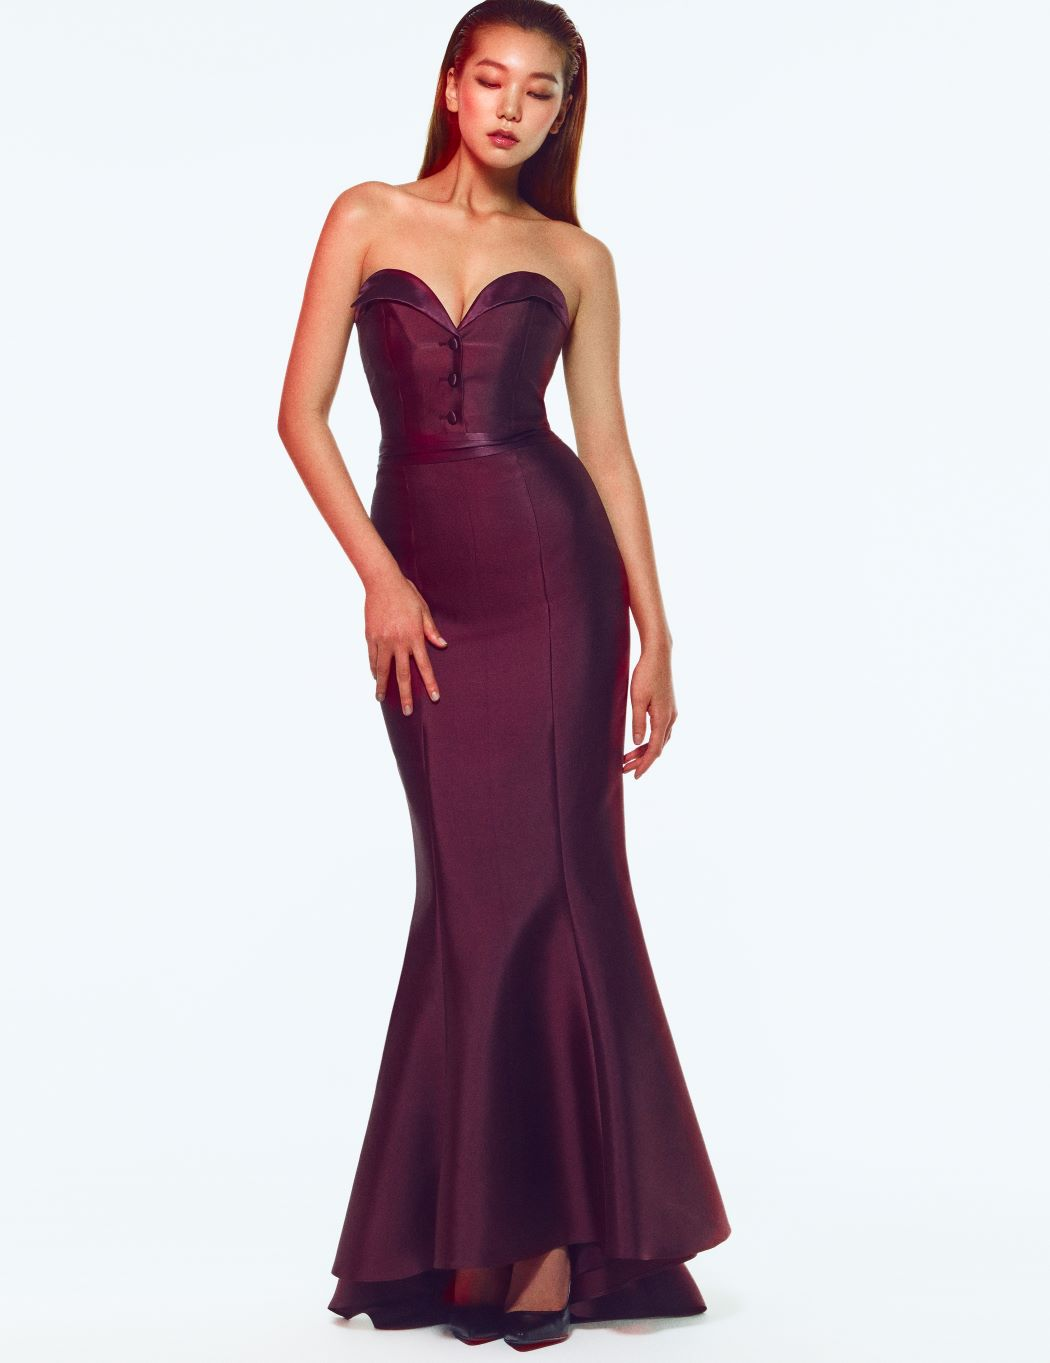 BURGUNDY PEAKED LAPEL BUSTIER-DRESS